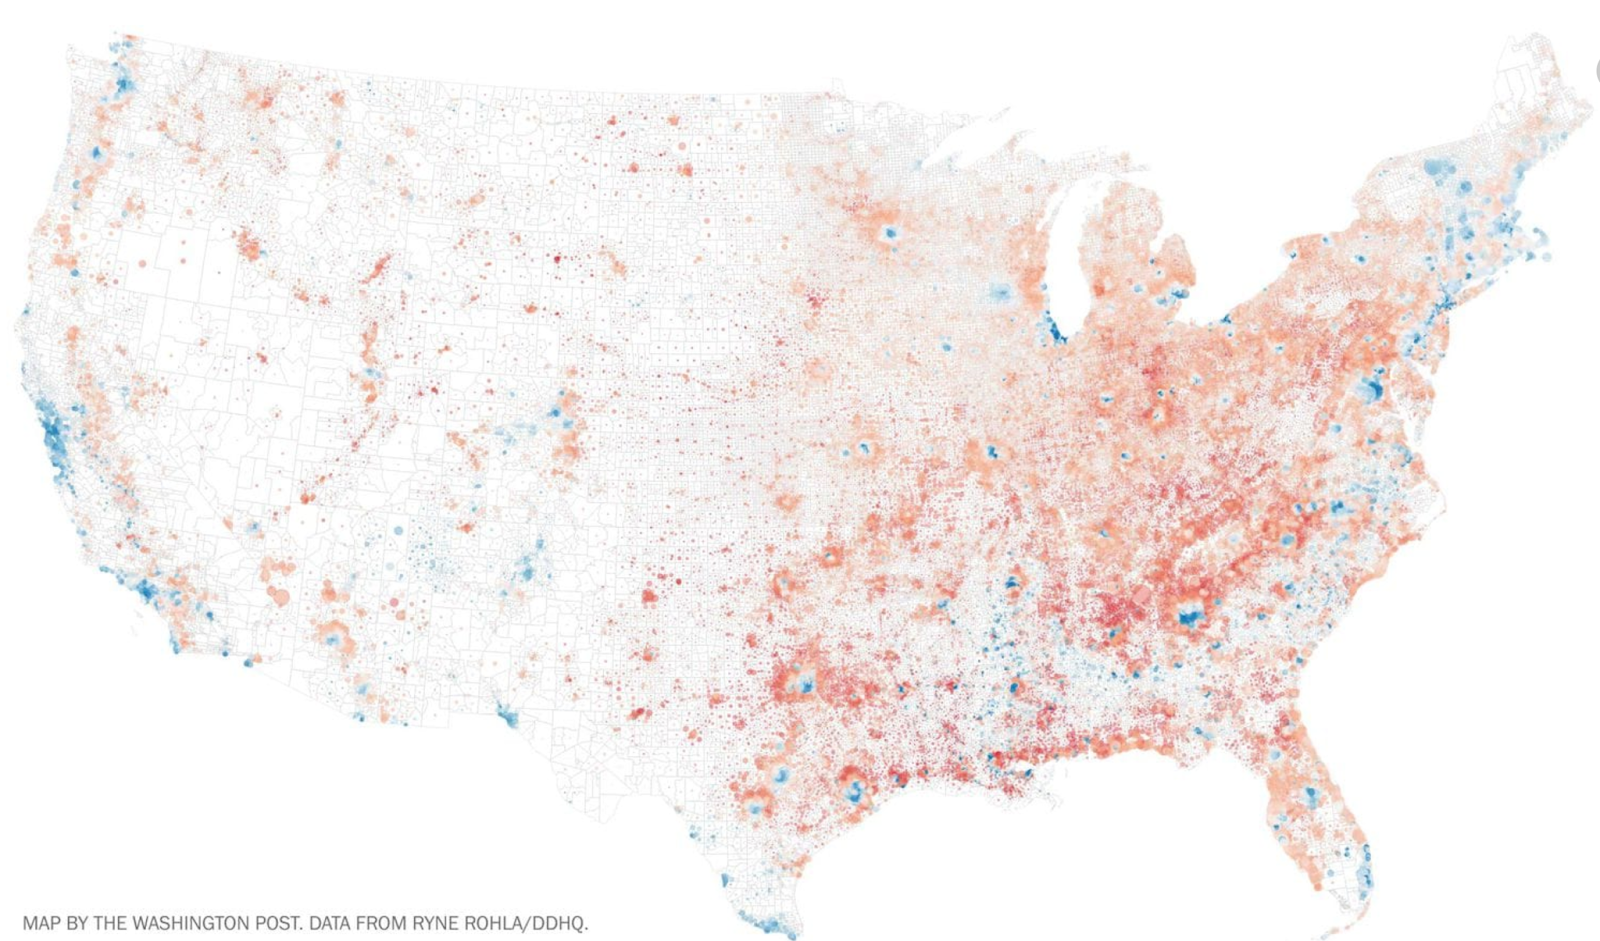 this map takes the very same data yet is designed to ameliorate the form it considers the underlying problems of its distribution and the geographies it is